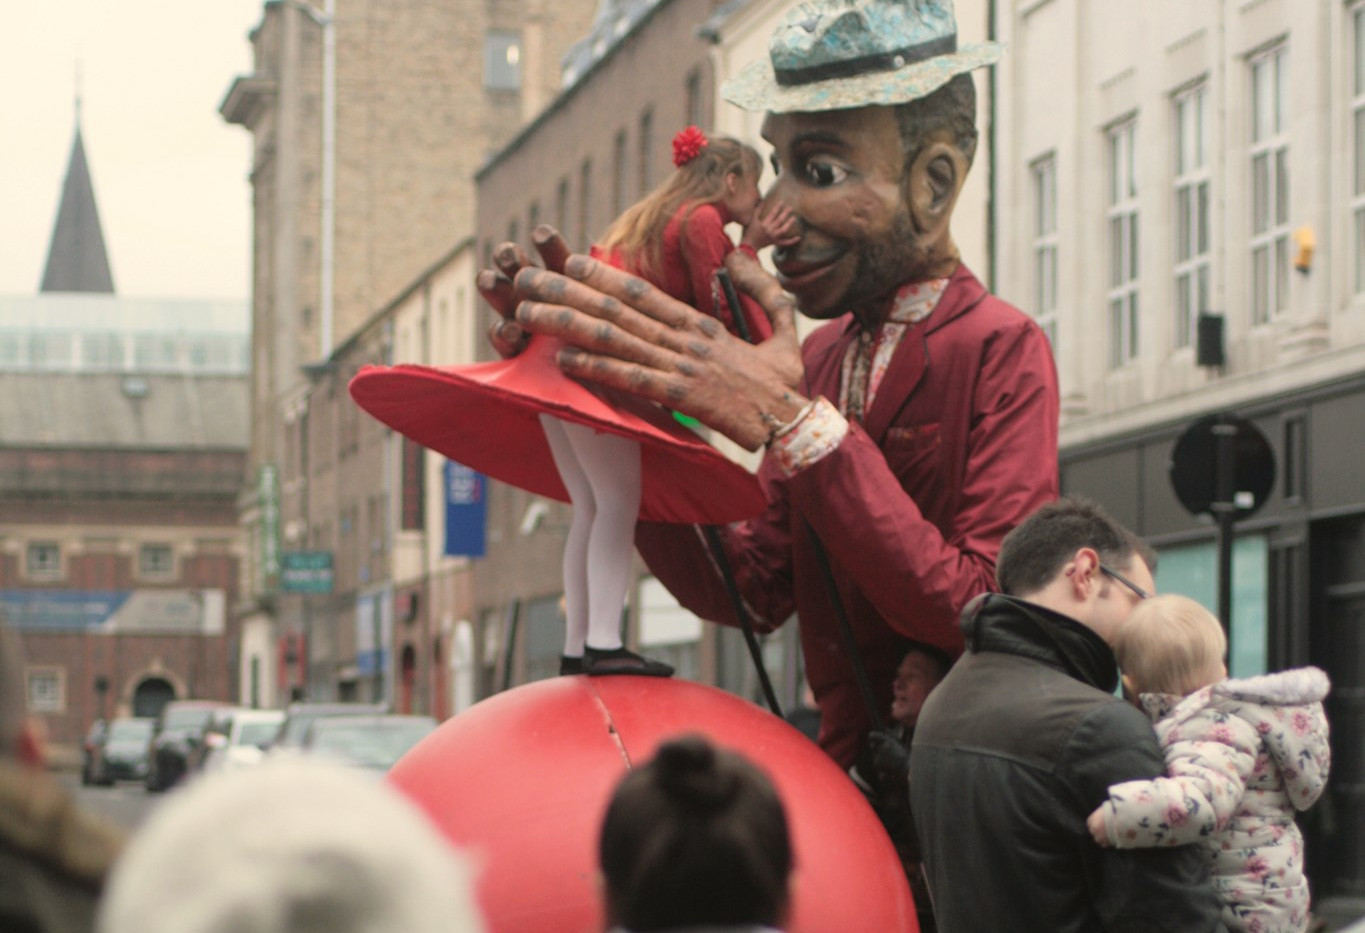 Join the Parade by Compagnie with Balls